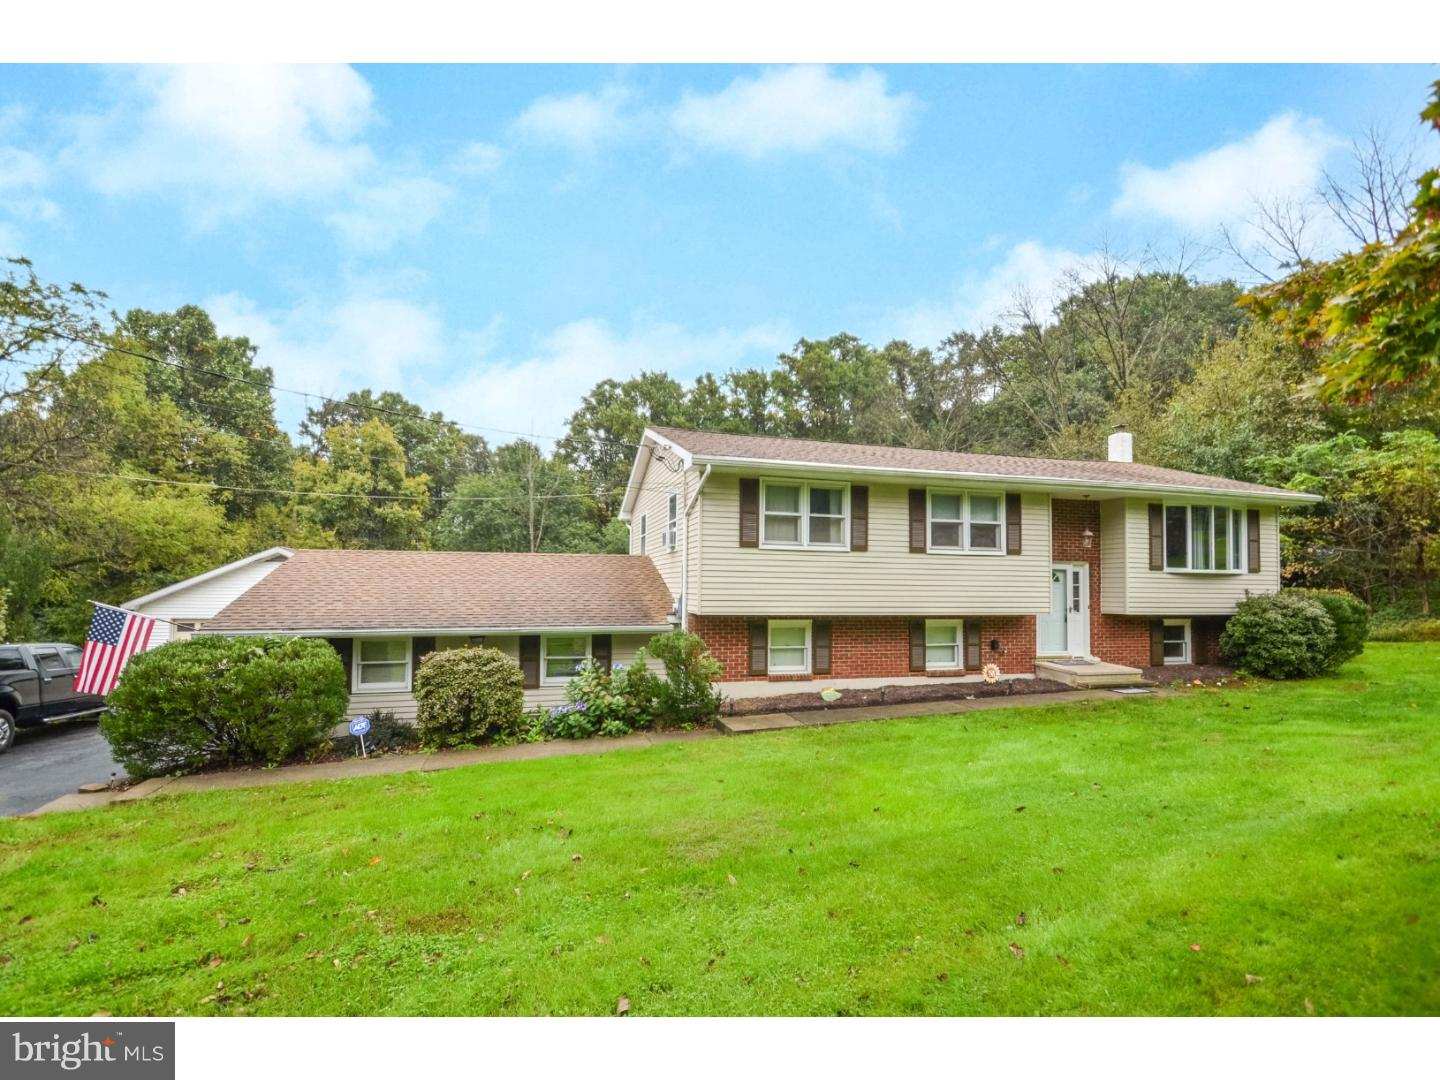 5145 APPLEBUTTER HILL ROAD, CENTER VALLEY, PA 18034